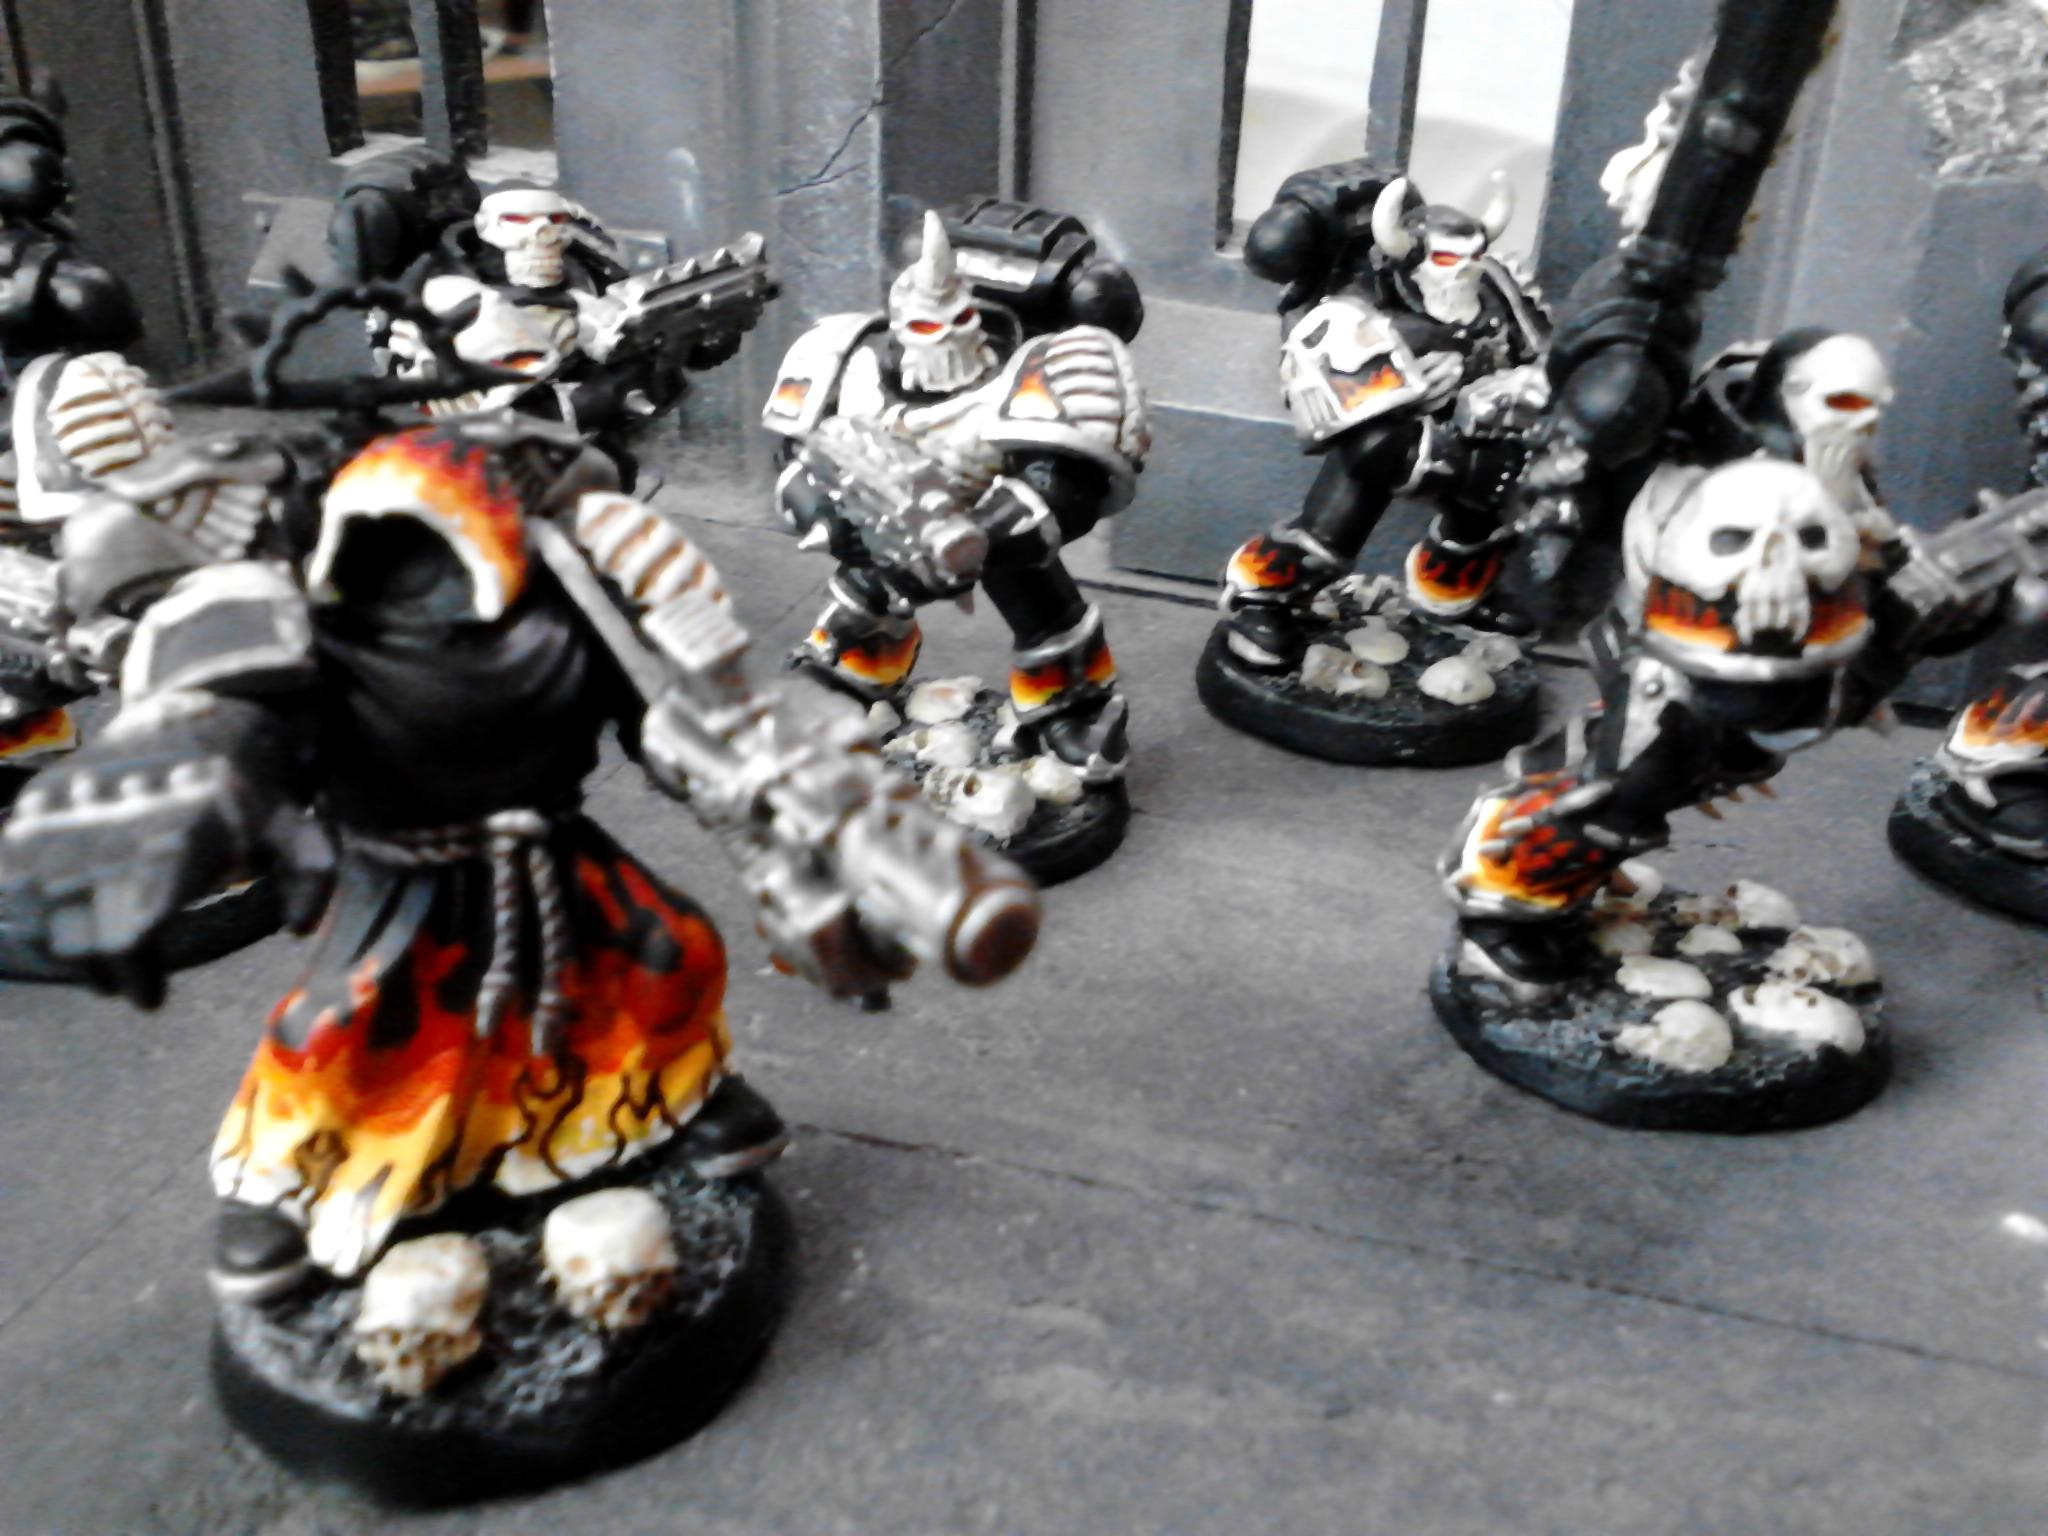 Budget, Captain, Elites, Fire, Fire Hawks, Legion Of The Damned, Skull, Space Marines